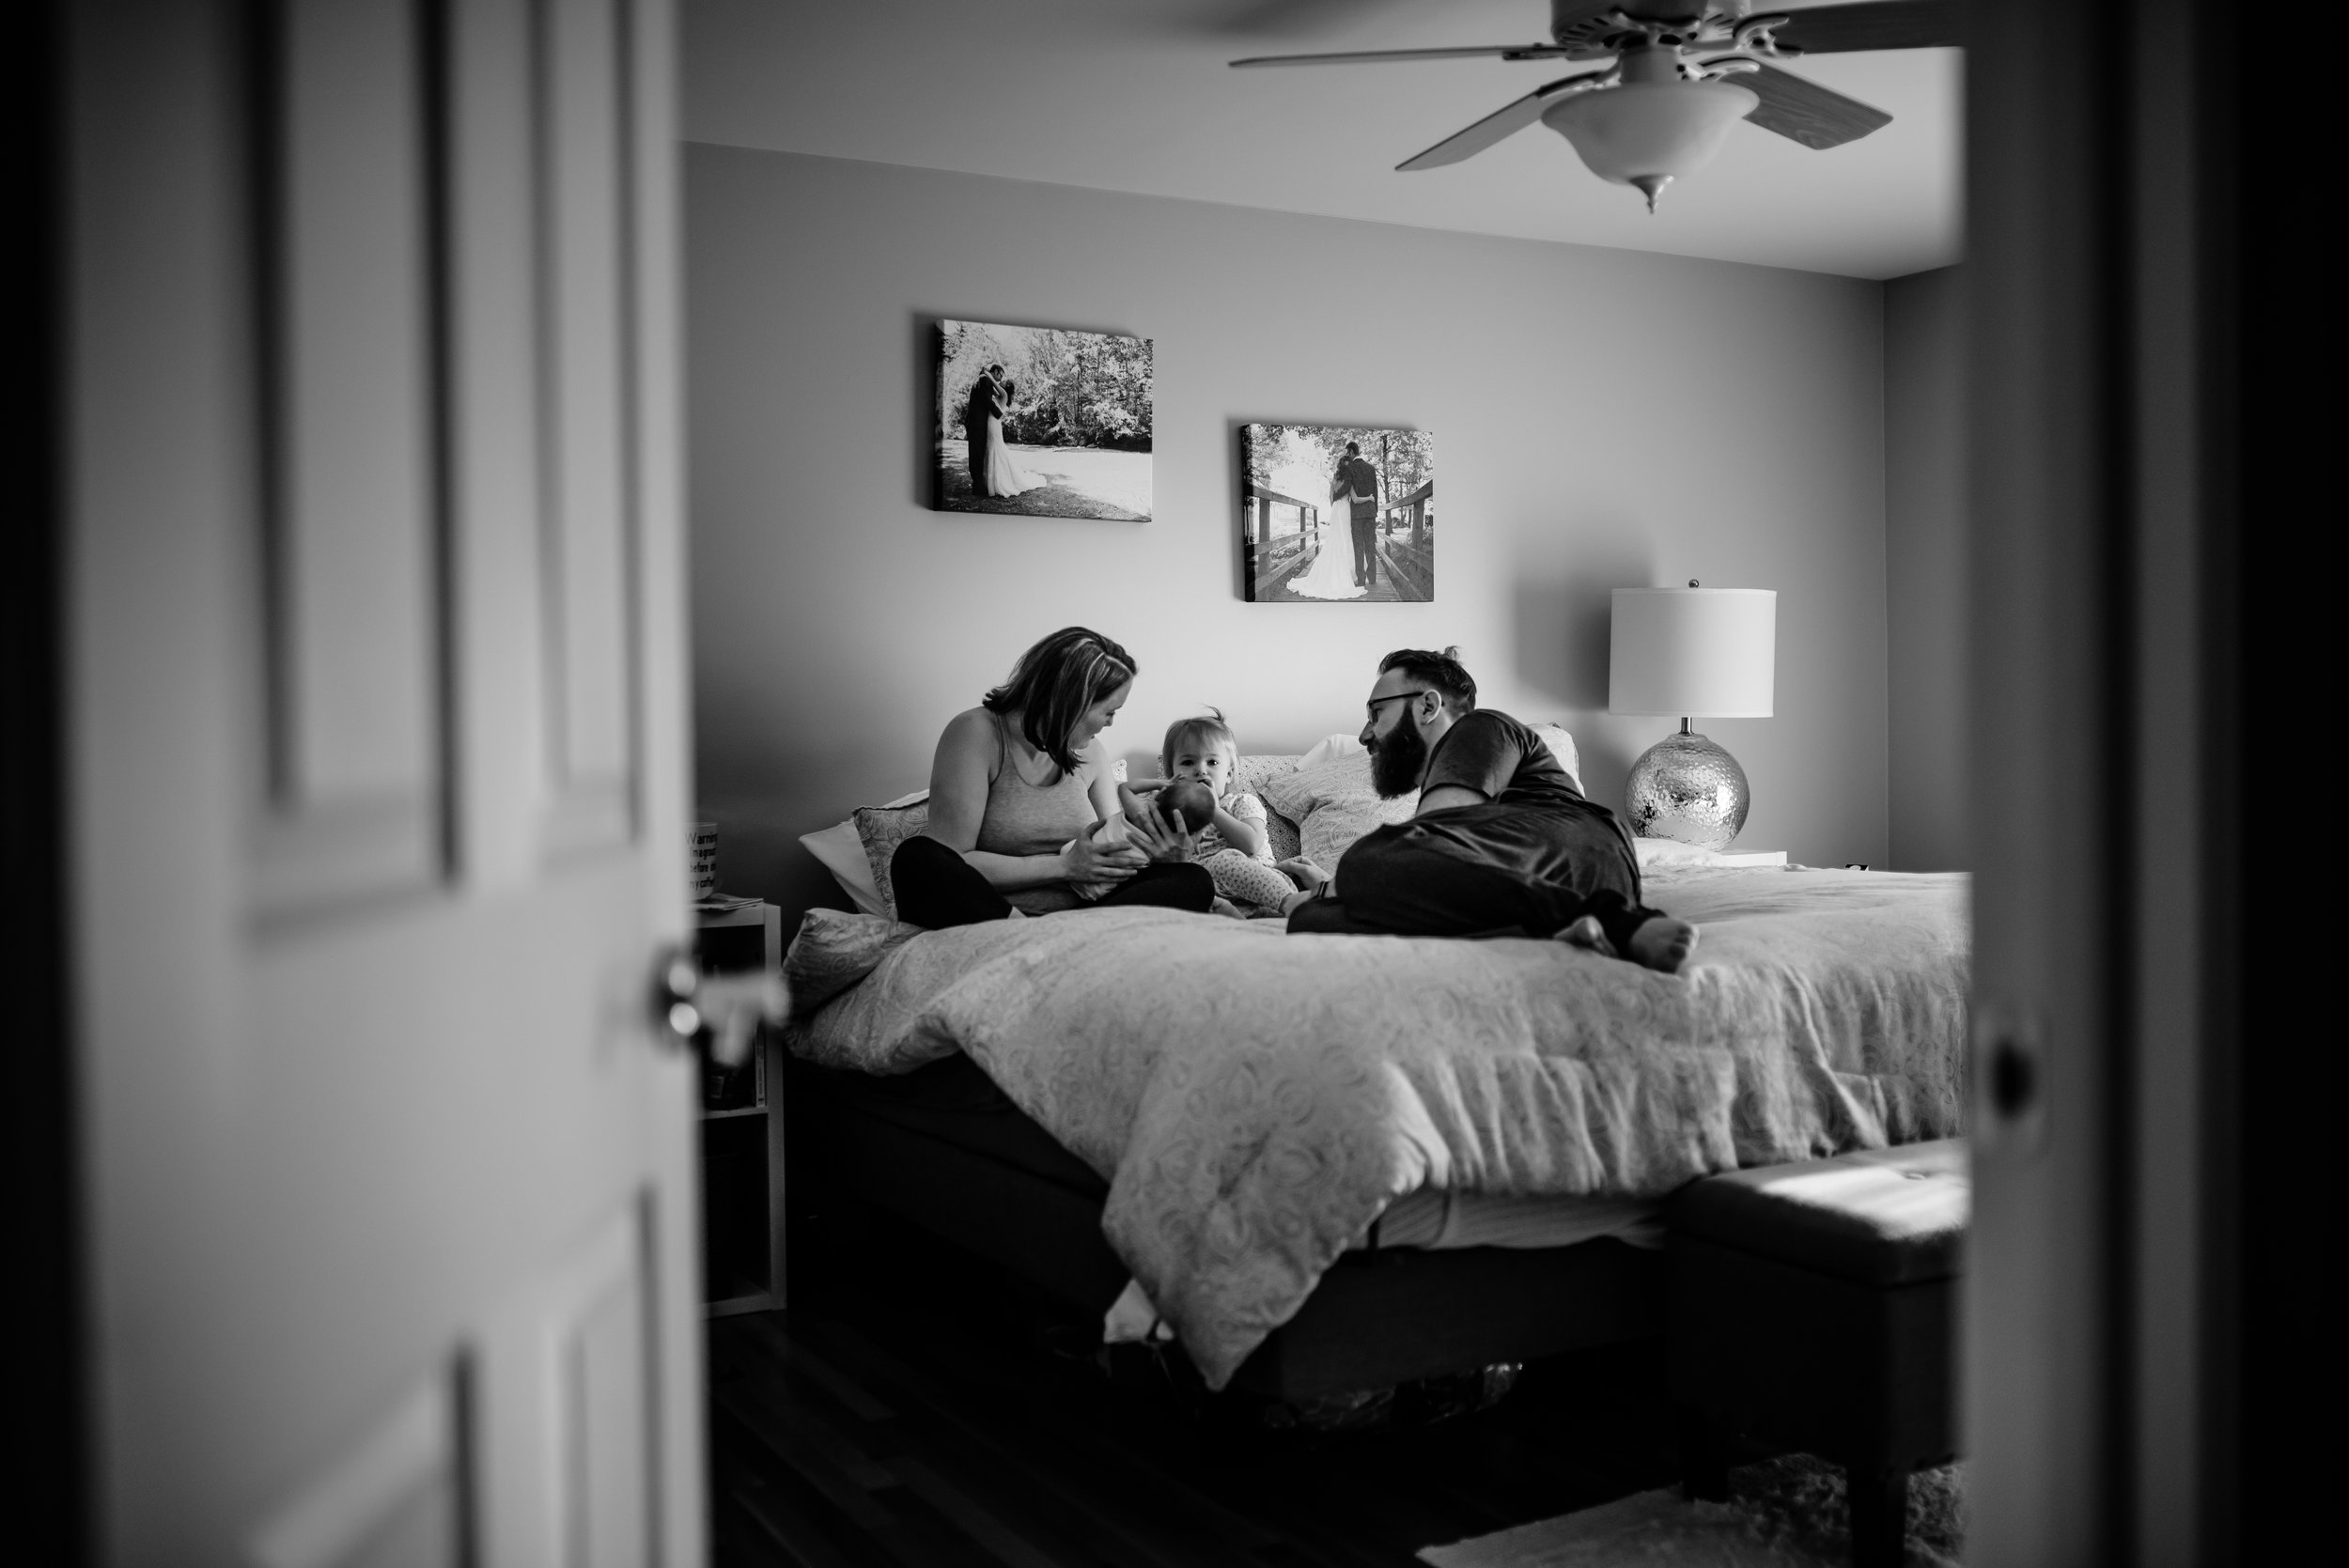 Family hangs out atop bed